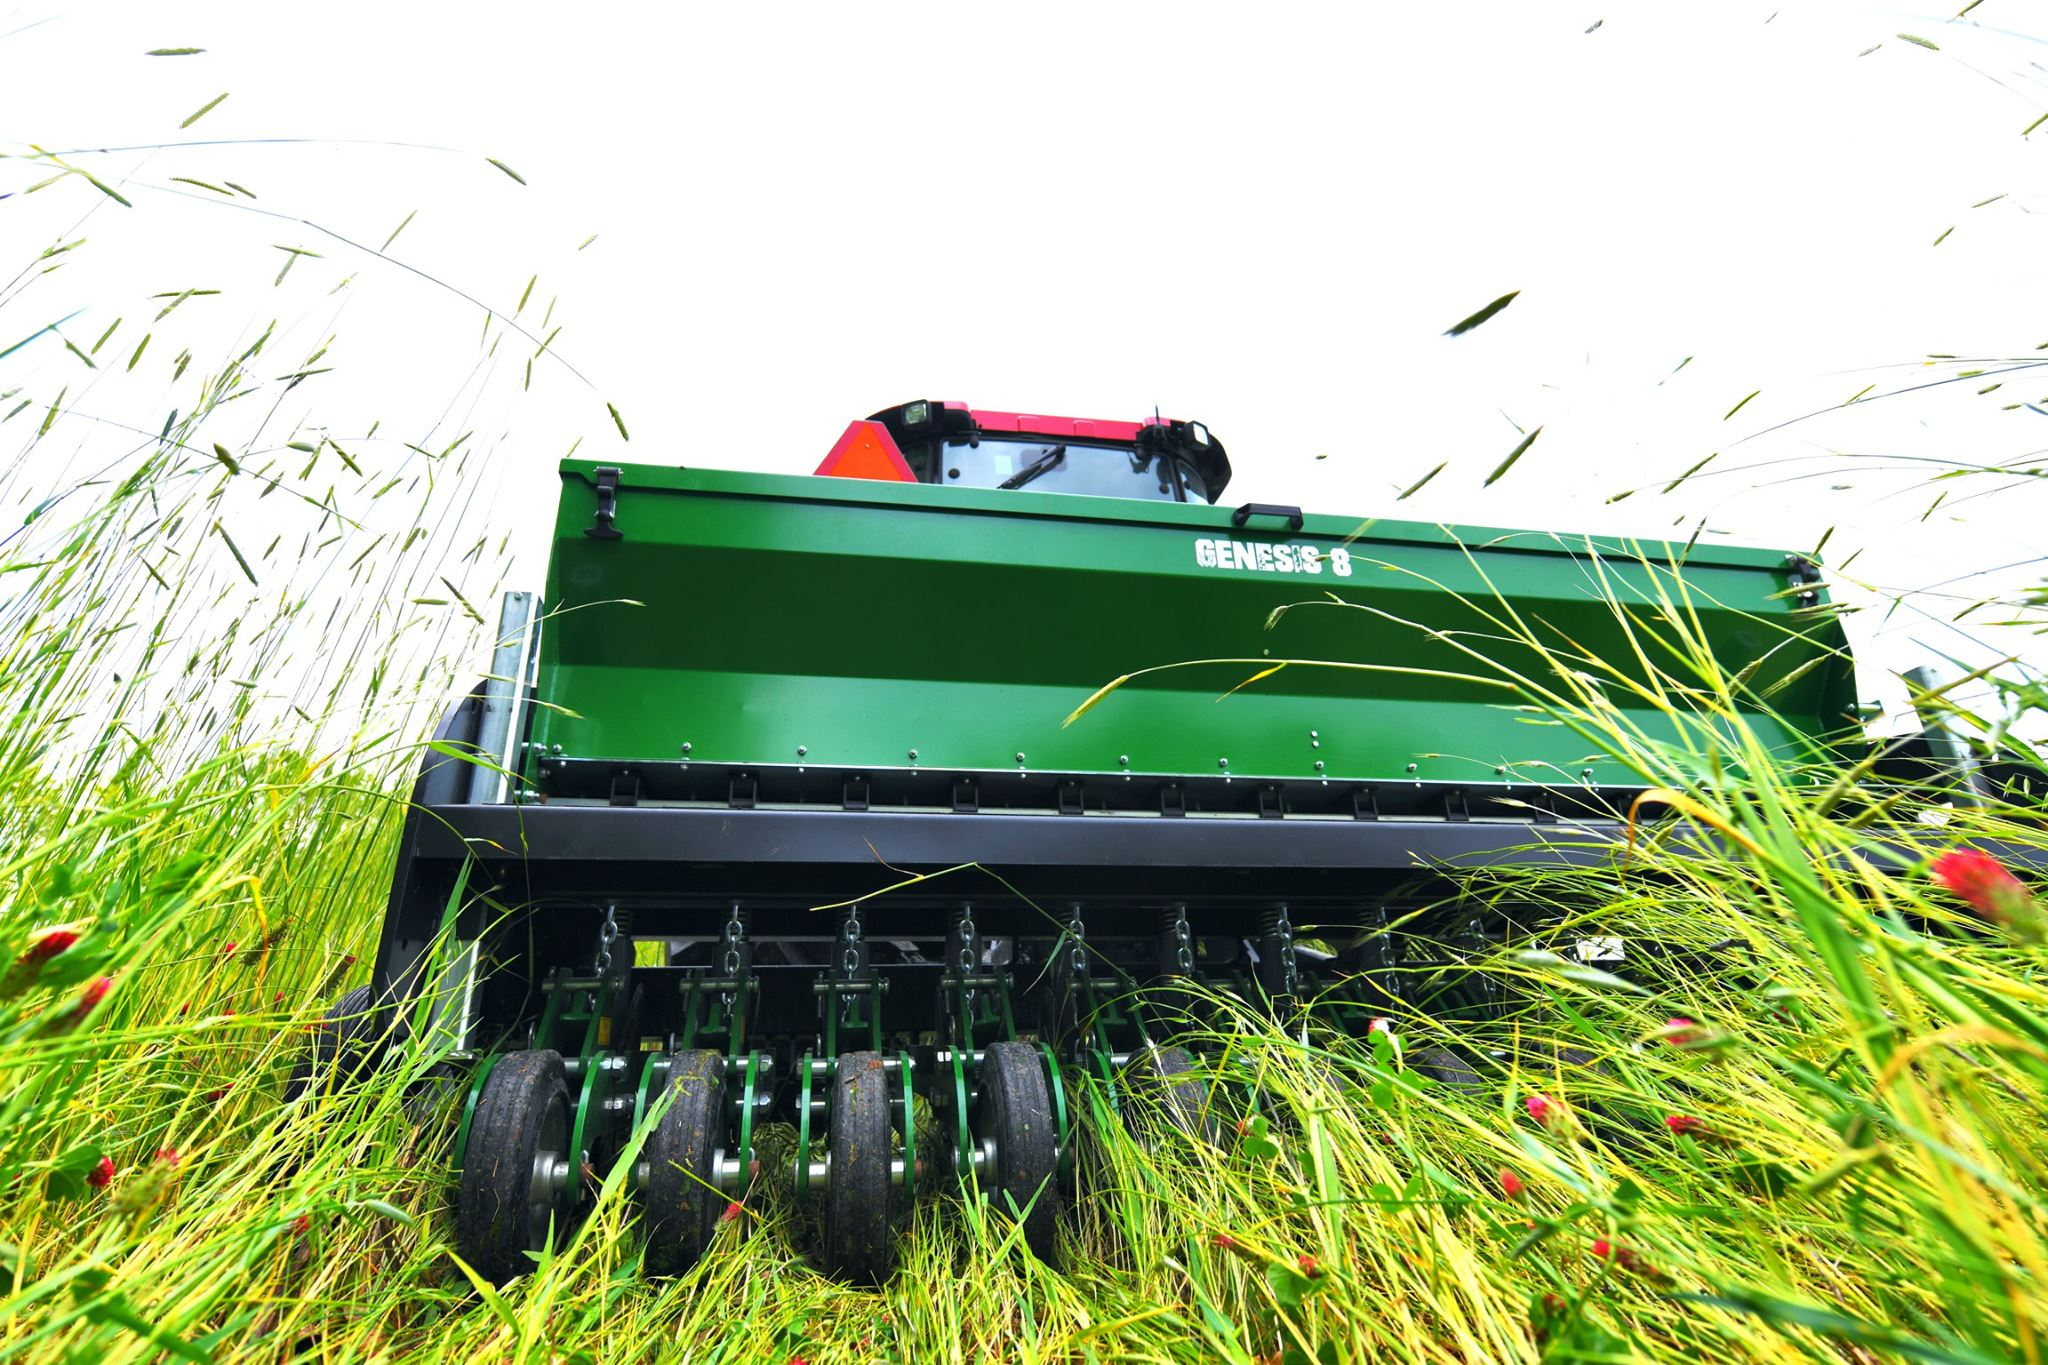 Genesis drill planting into standing greens in a food plot